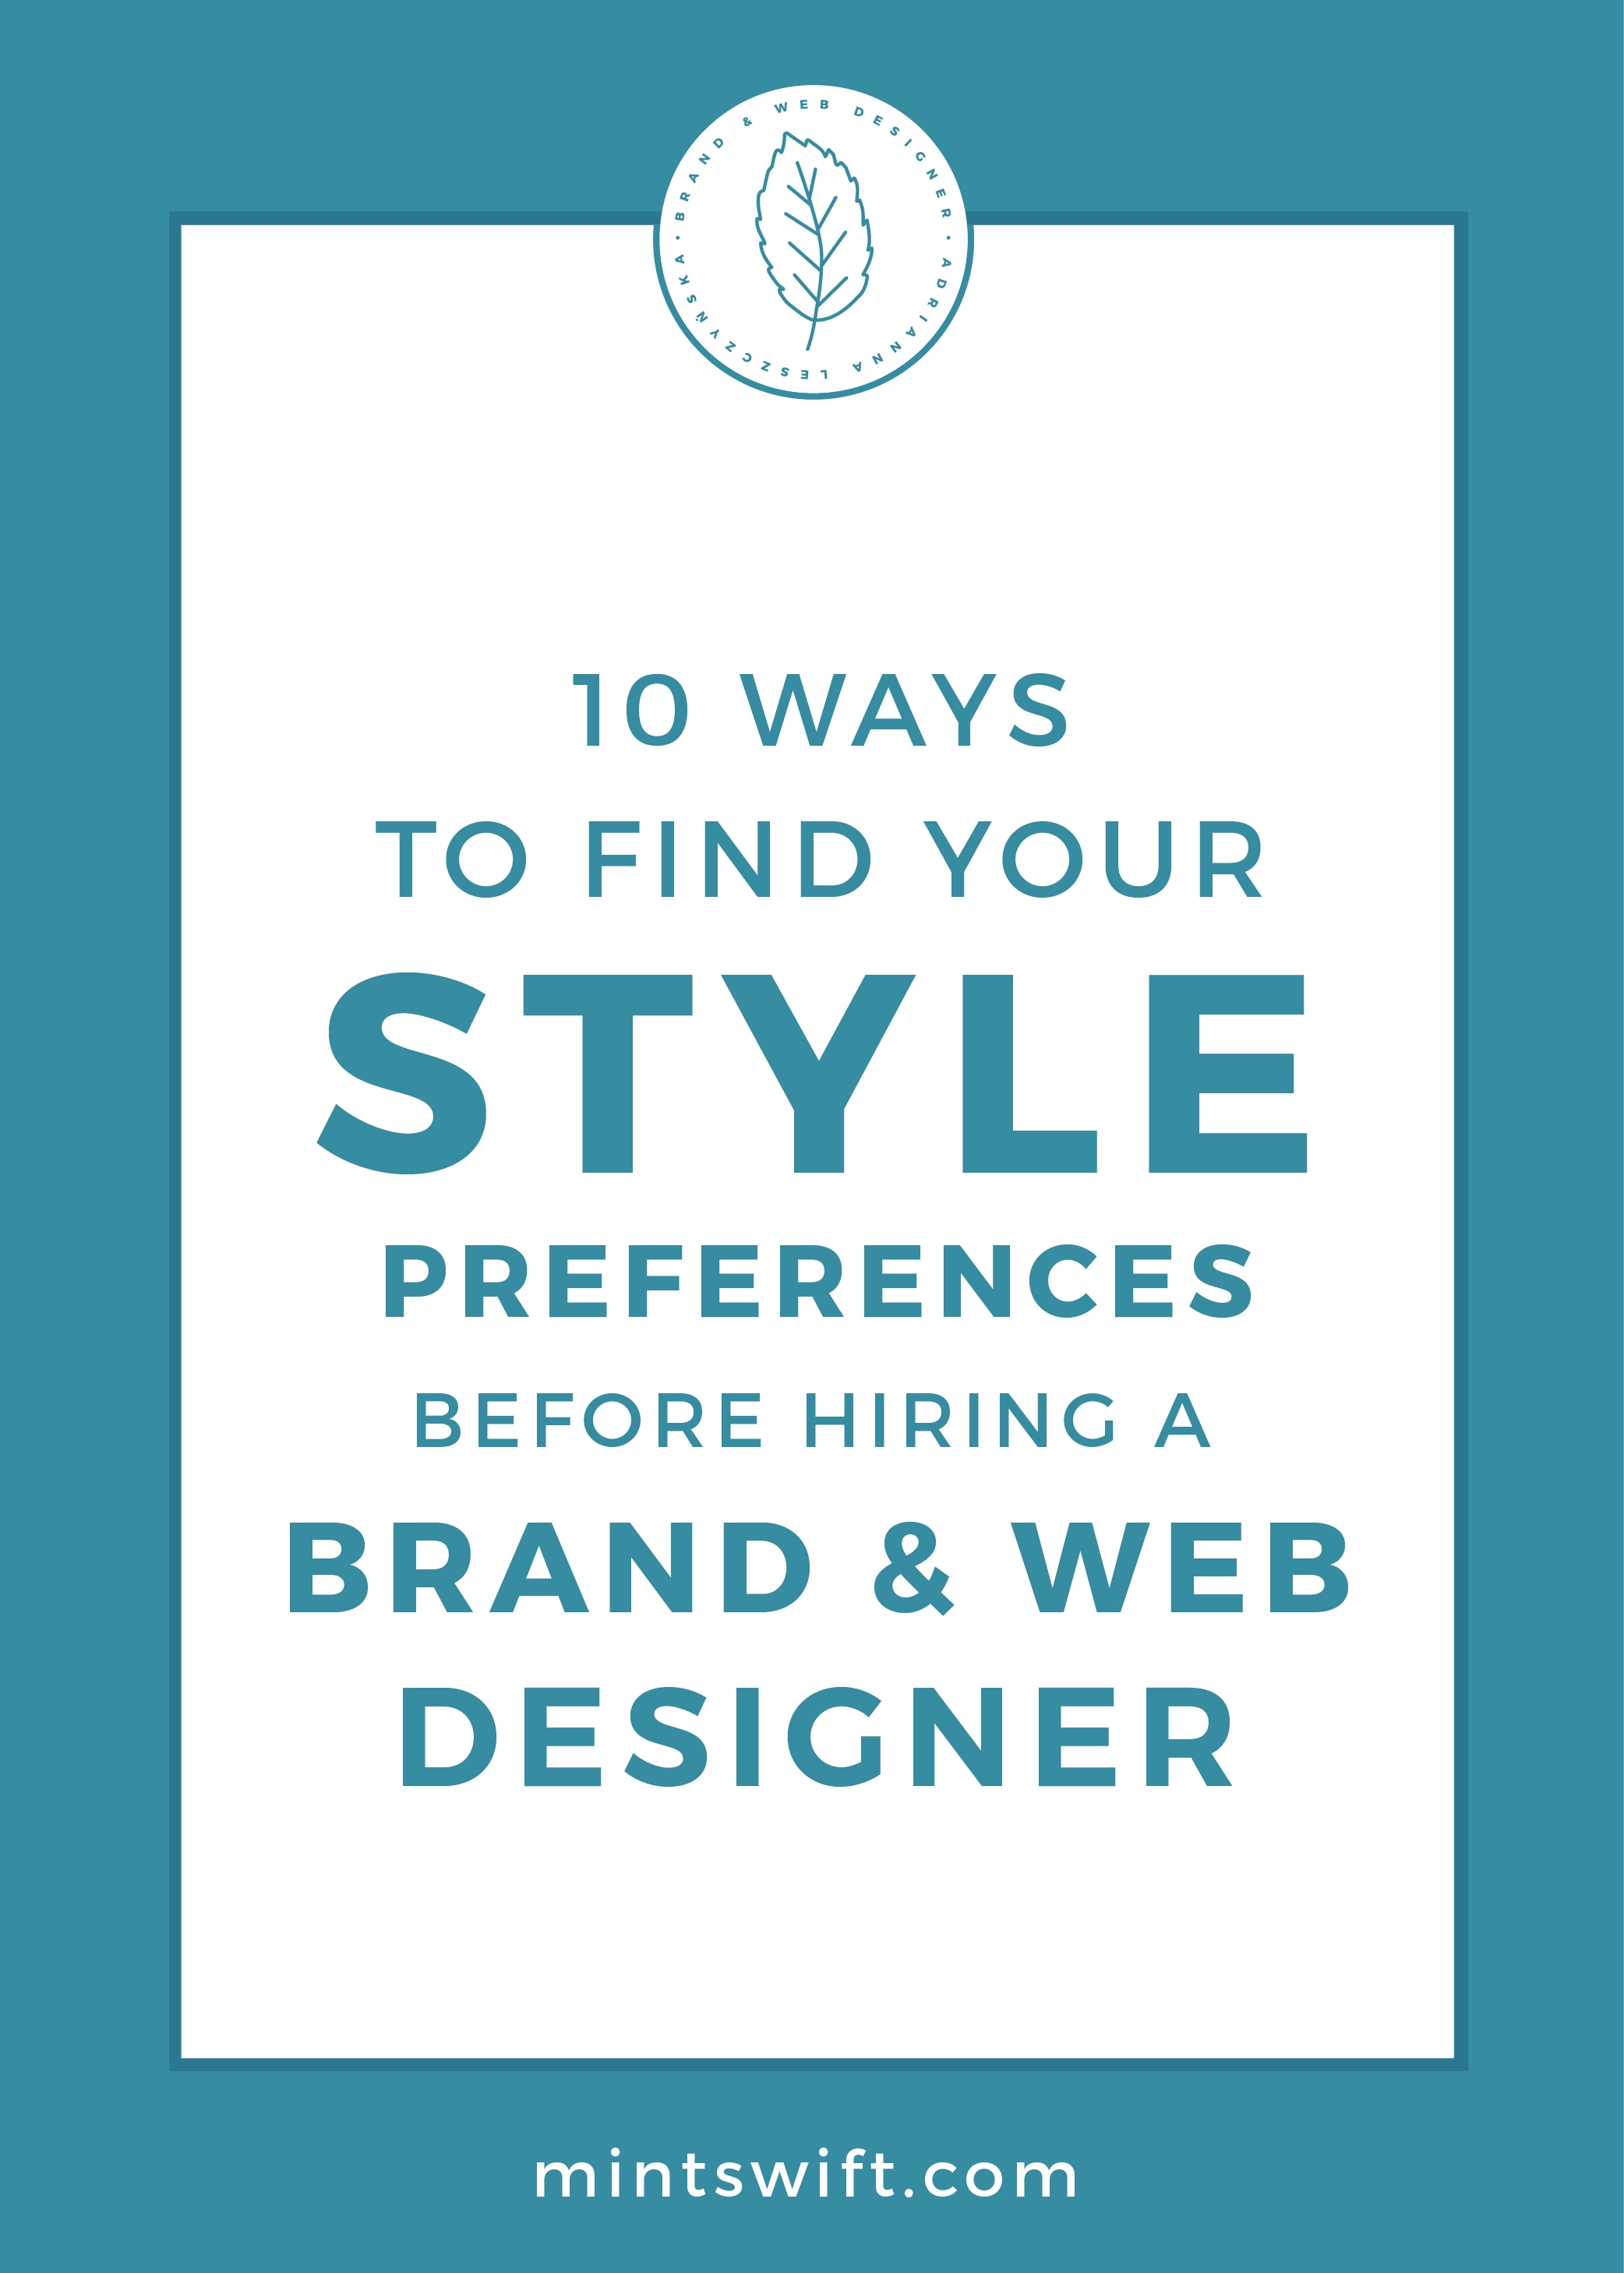 10 Ways to Find Your Style Preferences Before Hiring a Brand & Website Designer by MintSwift